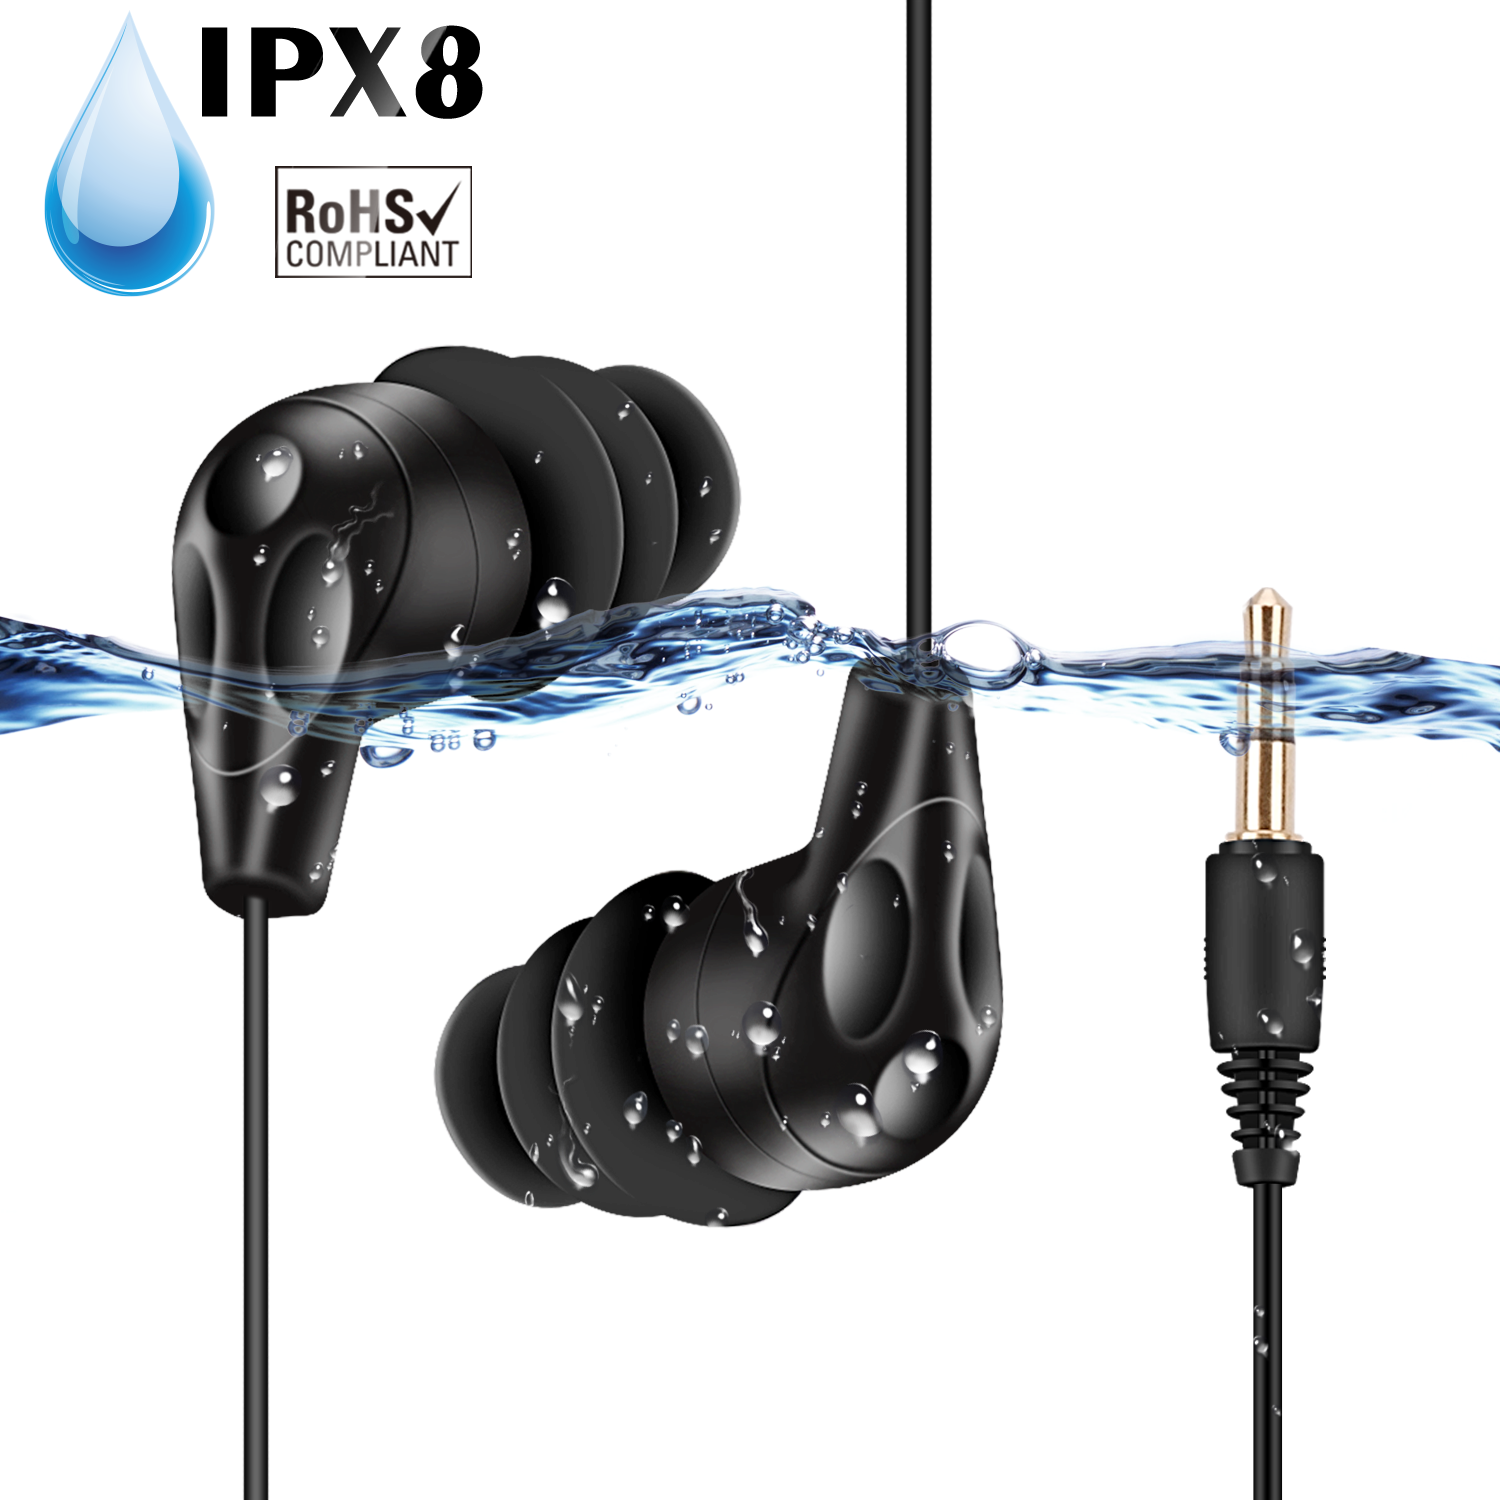 AGPTEK IPX8 Waterproof Headphones, Coiled Swimming Earbuds with Stereo Audio Extension Cable, SE11 Black